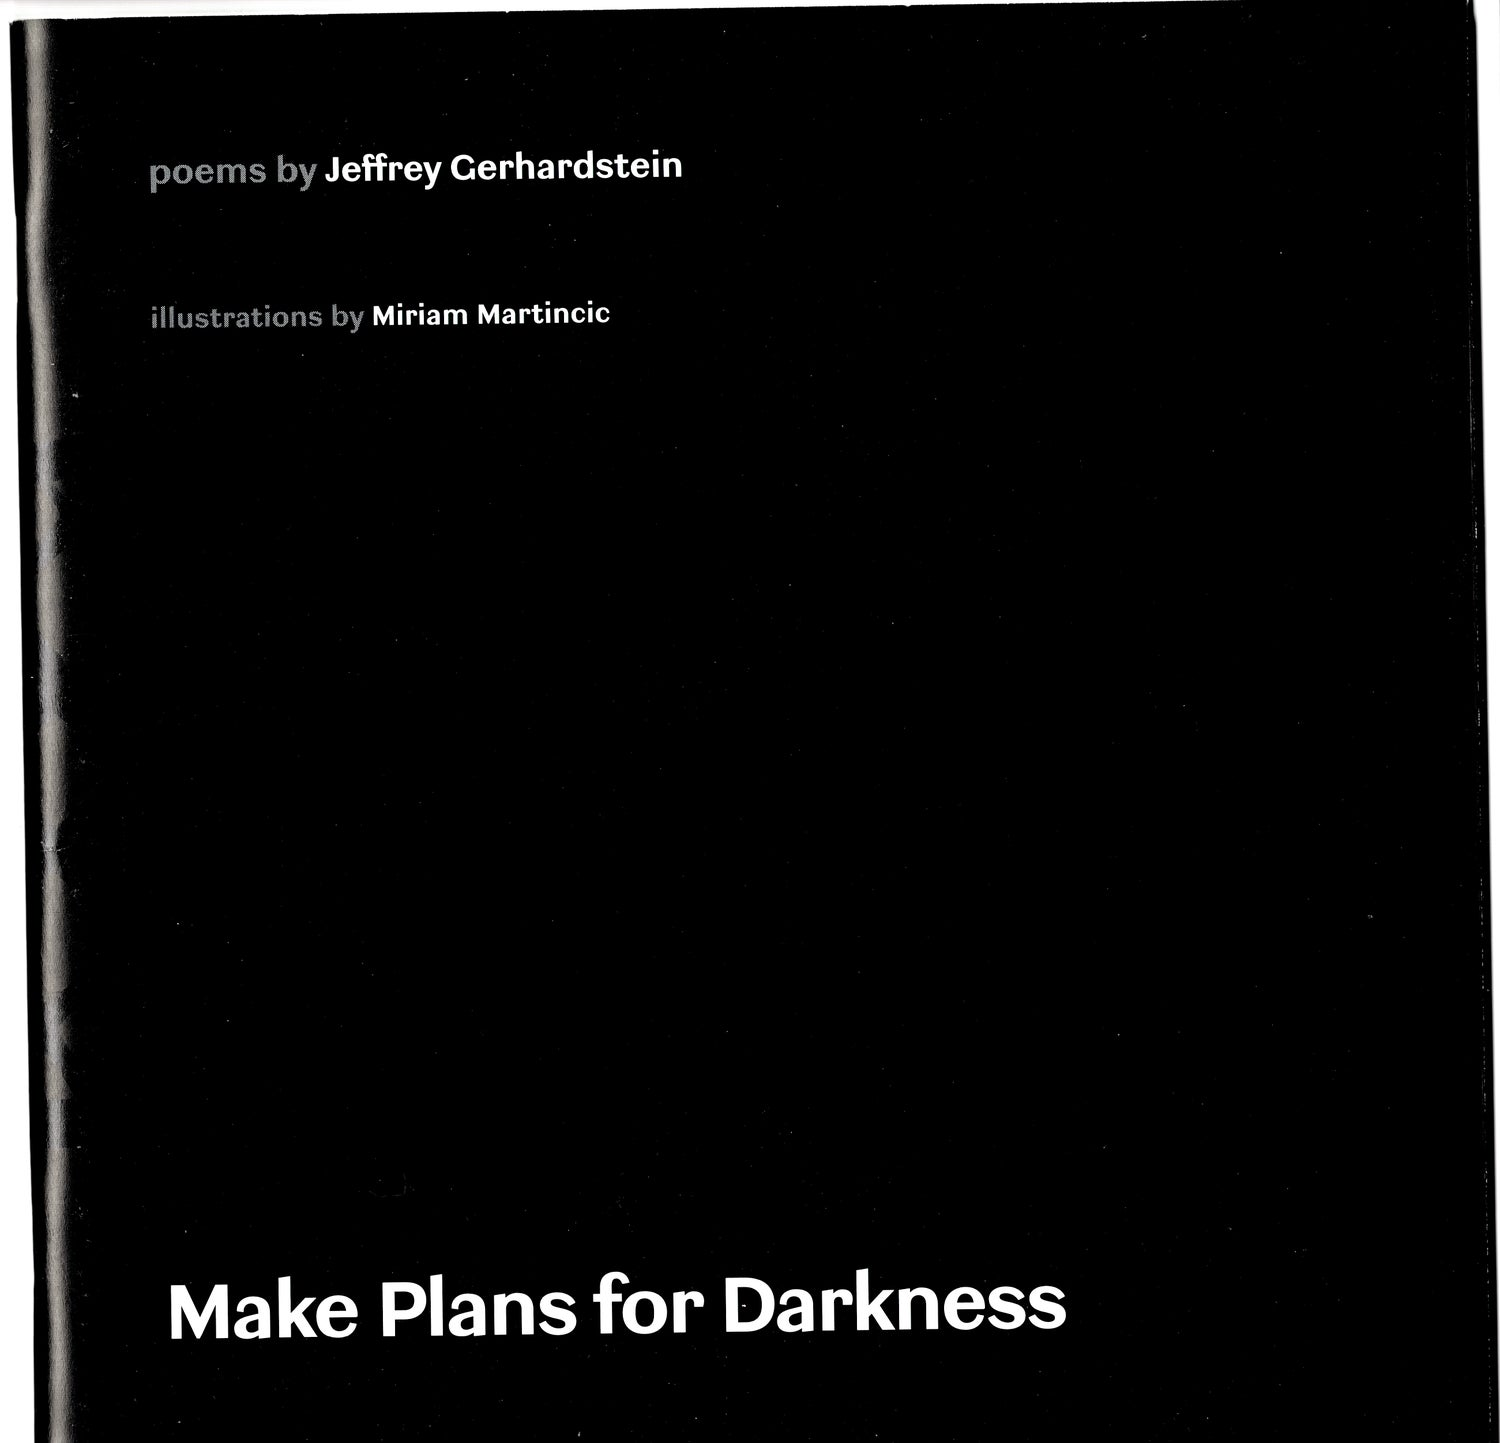 Image of Make Plans for Darkness, by Miriam Martincic and Jeffrey Gerhardstein